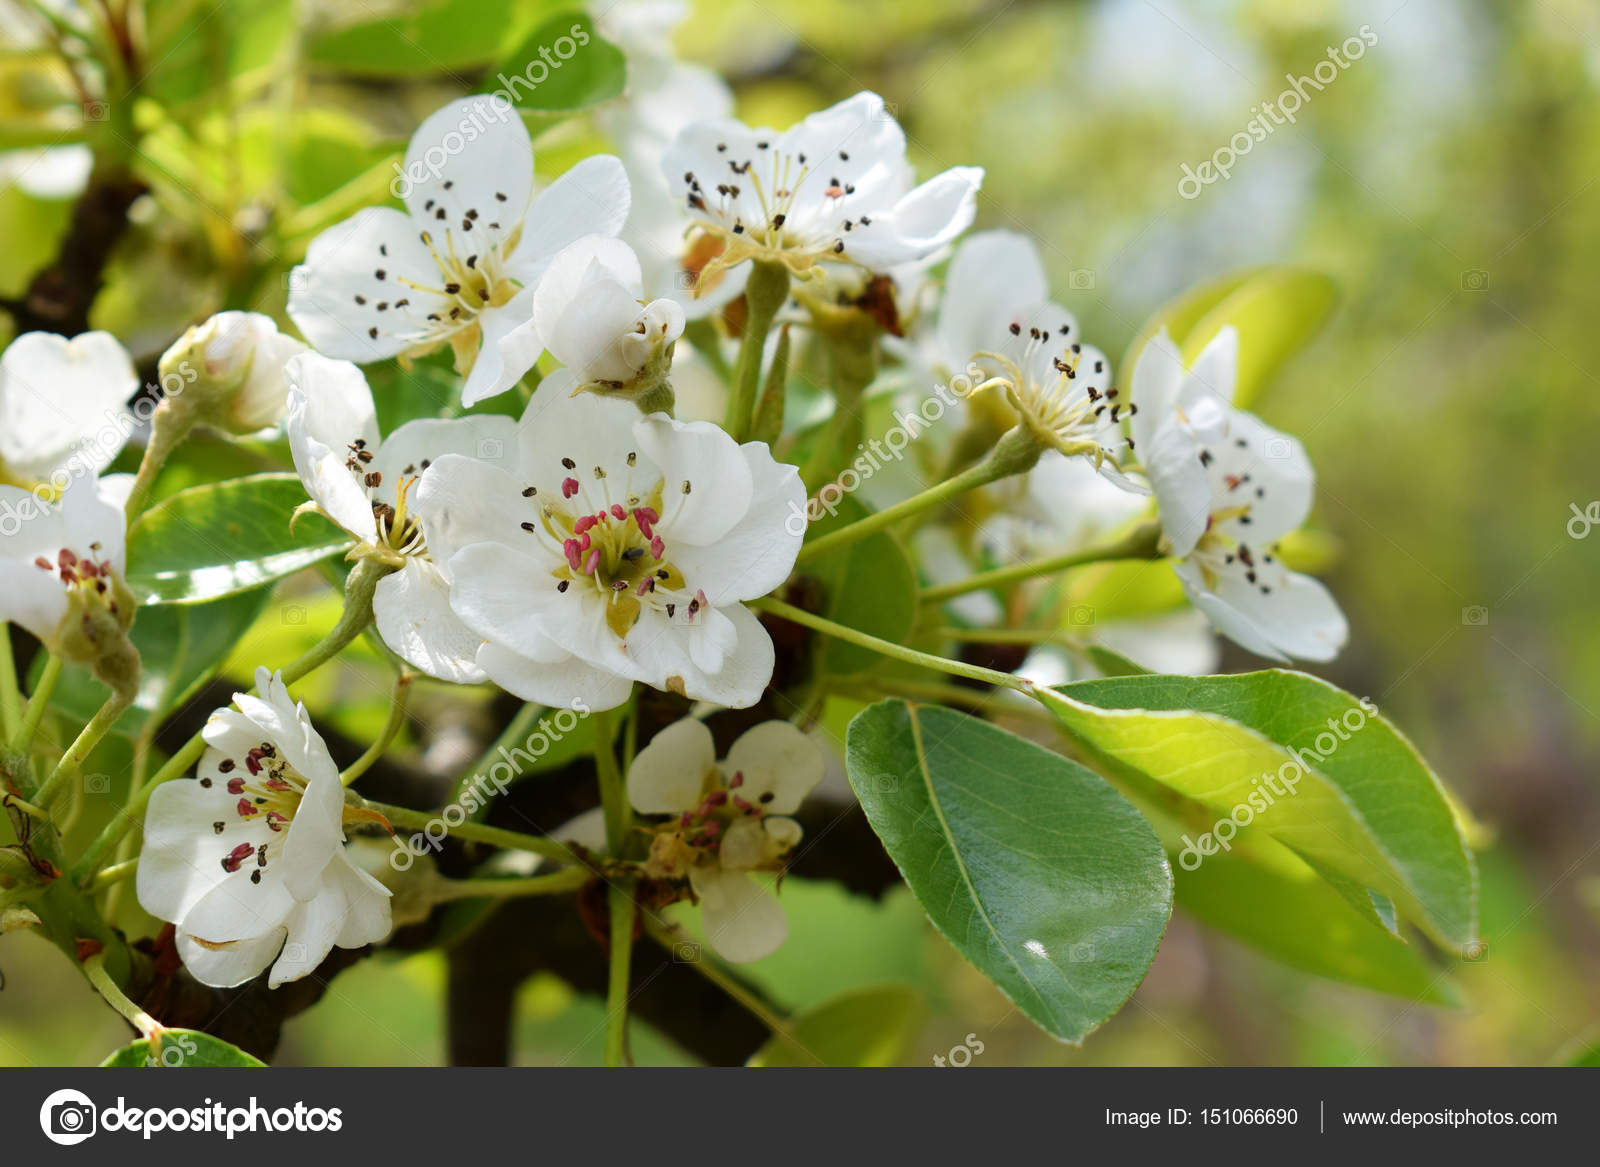 Pear Blossoms White Flowers Of Tree In The Early Spring Stock